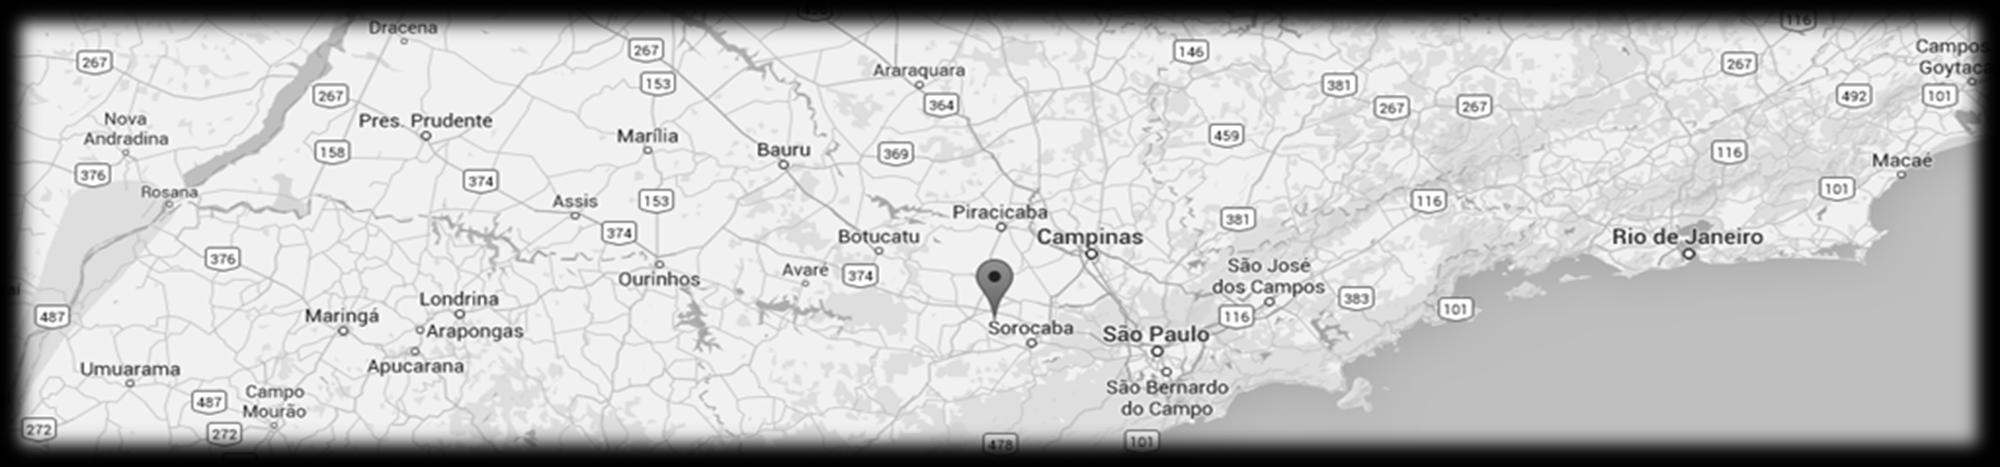 Airport Paranaguá Port Distance from São Paulo: 128 km Distance from the